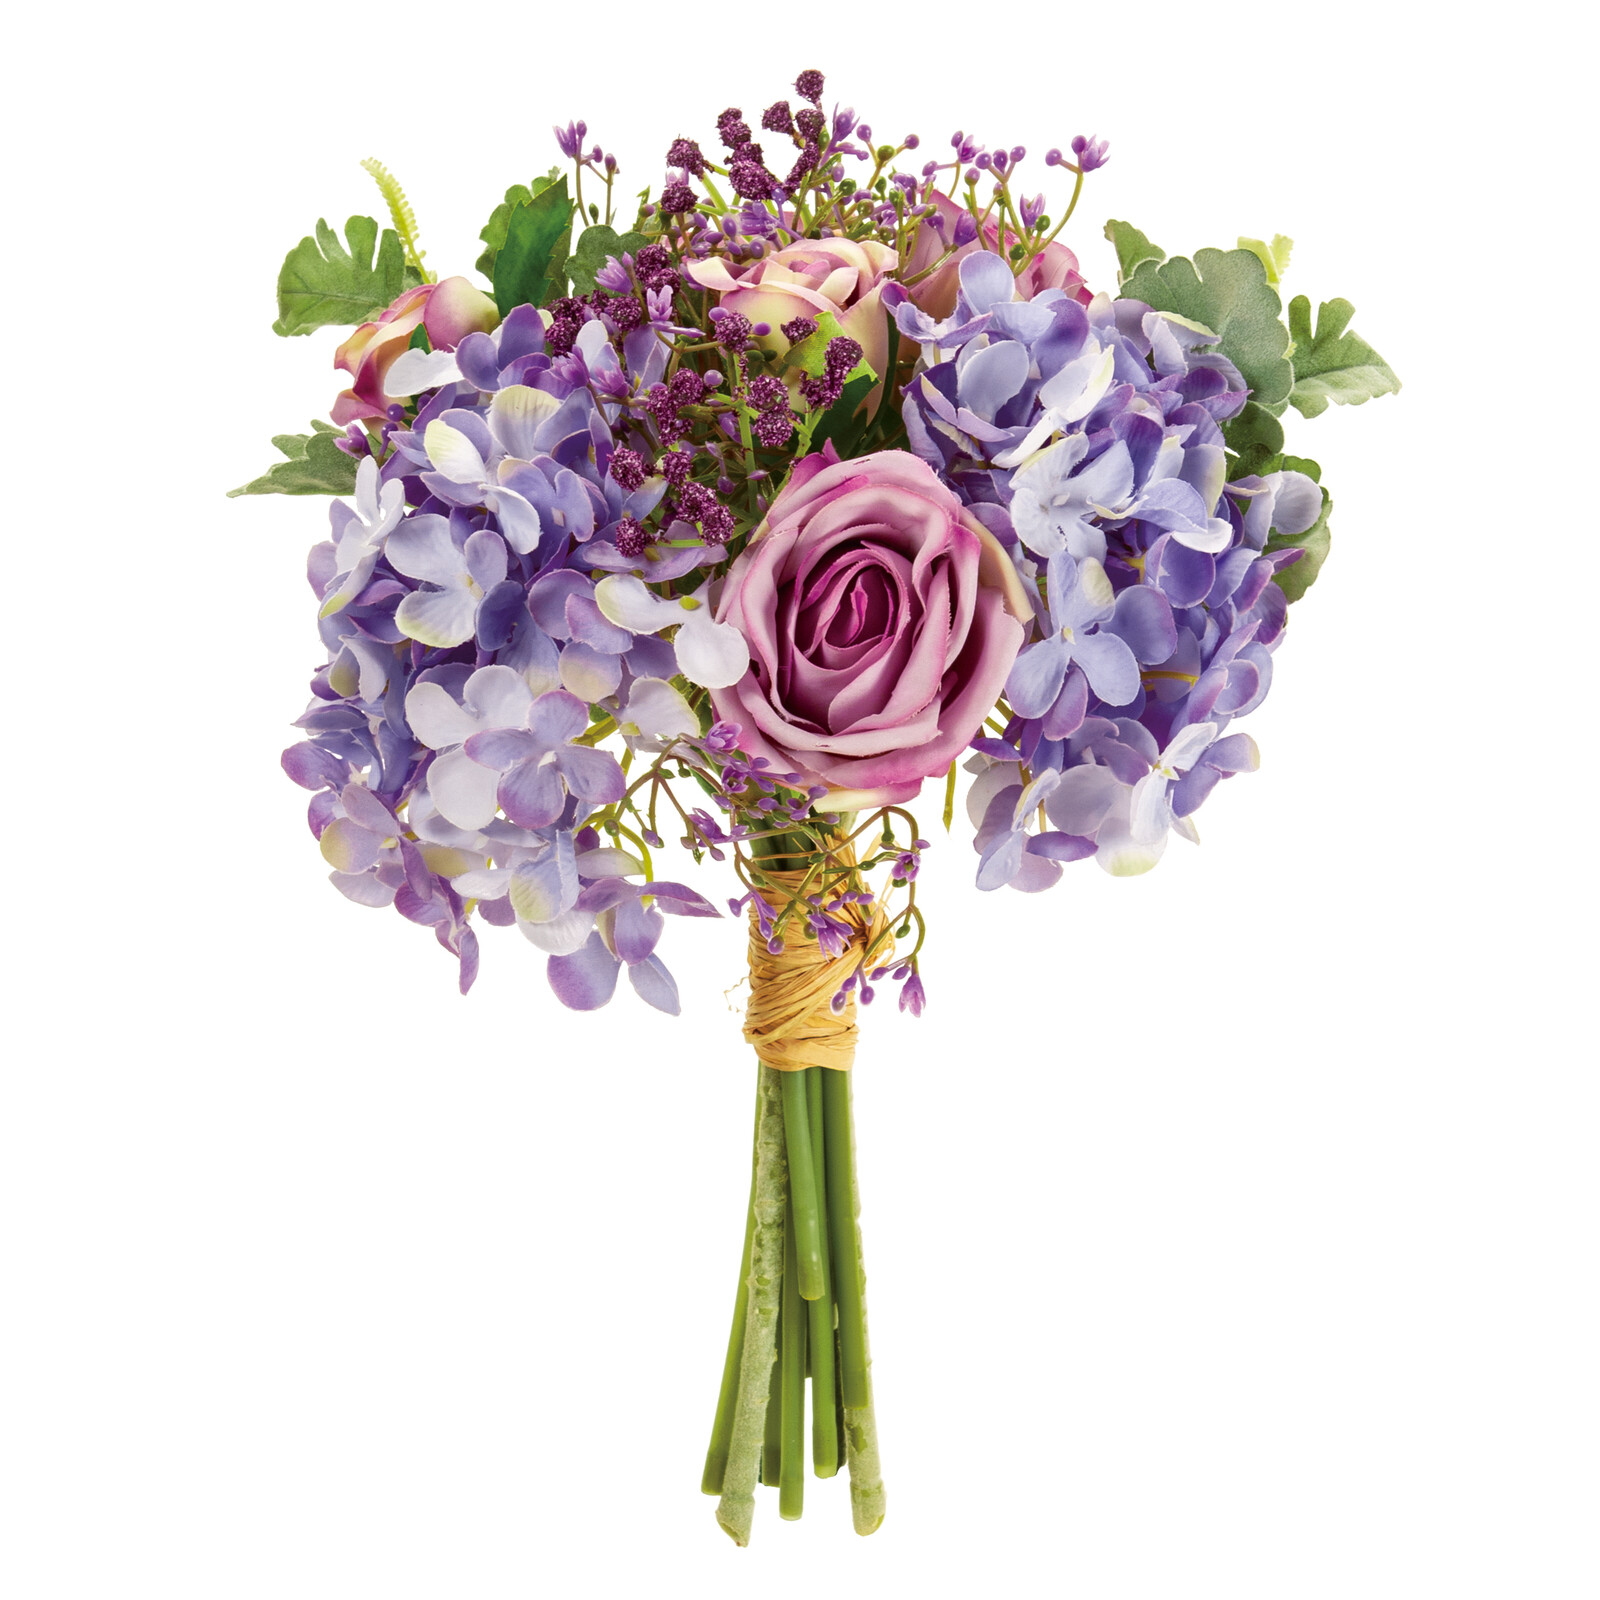 Rose Mix Bouquet Lavender Purple Flower Artificial Flower Bouquet Export Japanese Products To The World At Wholesale Prices Super Delivery